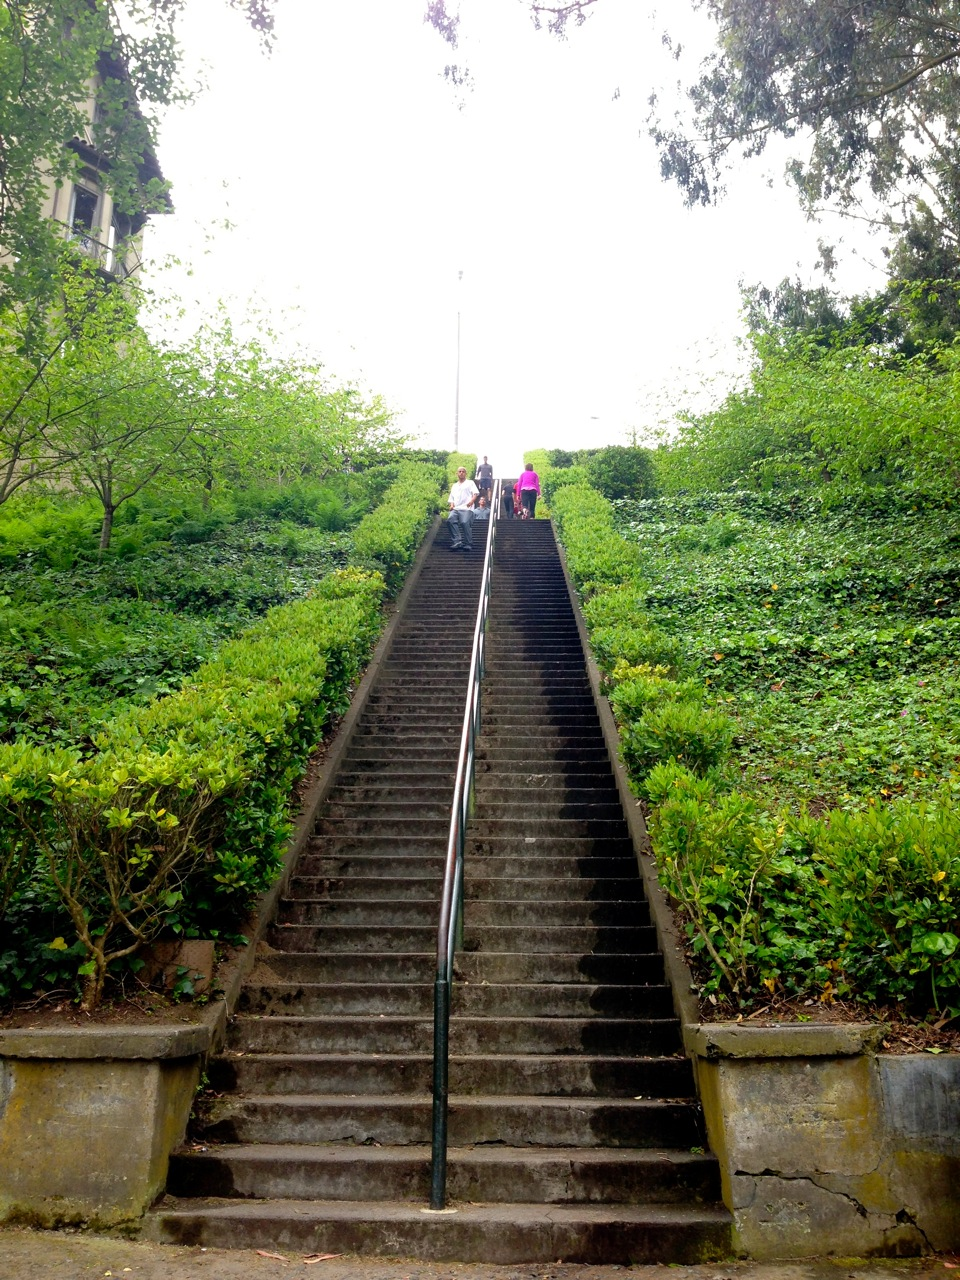 The first section of the Lyon Street Stairs